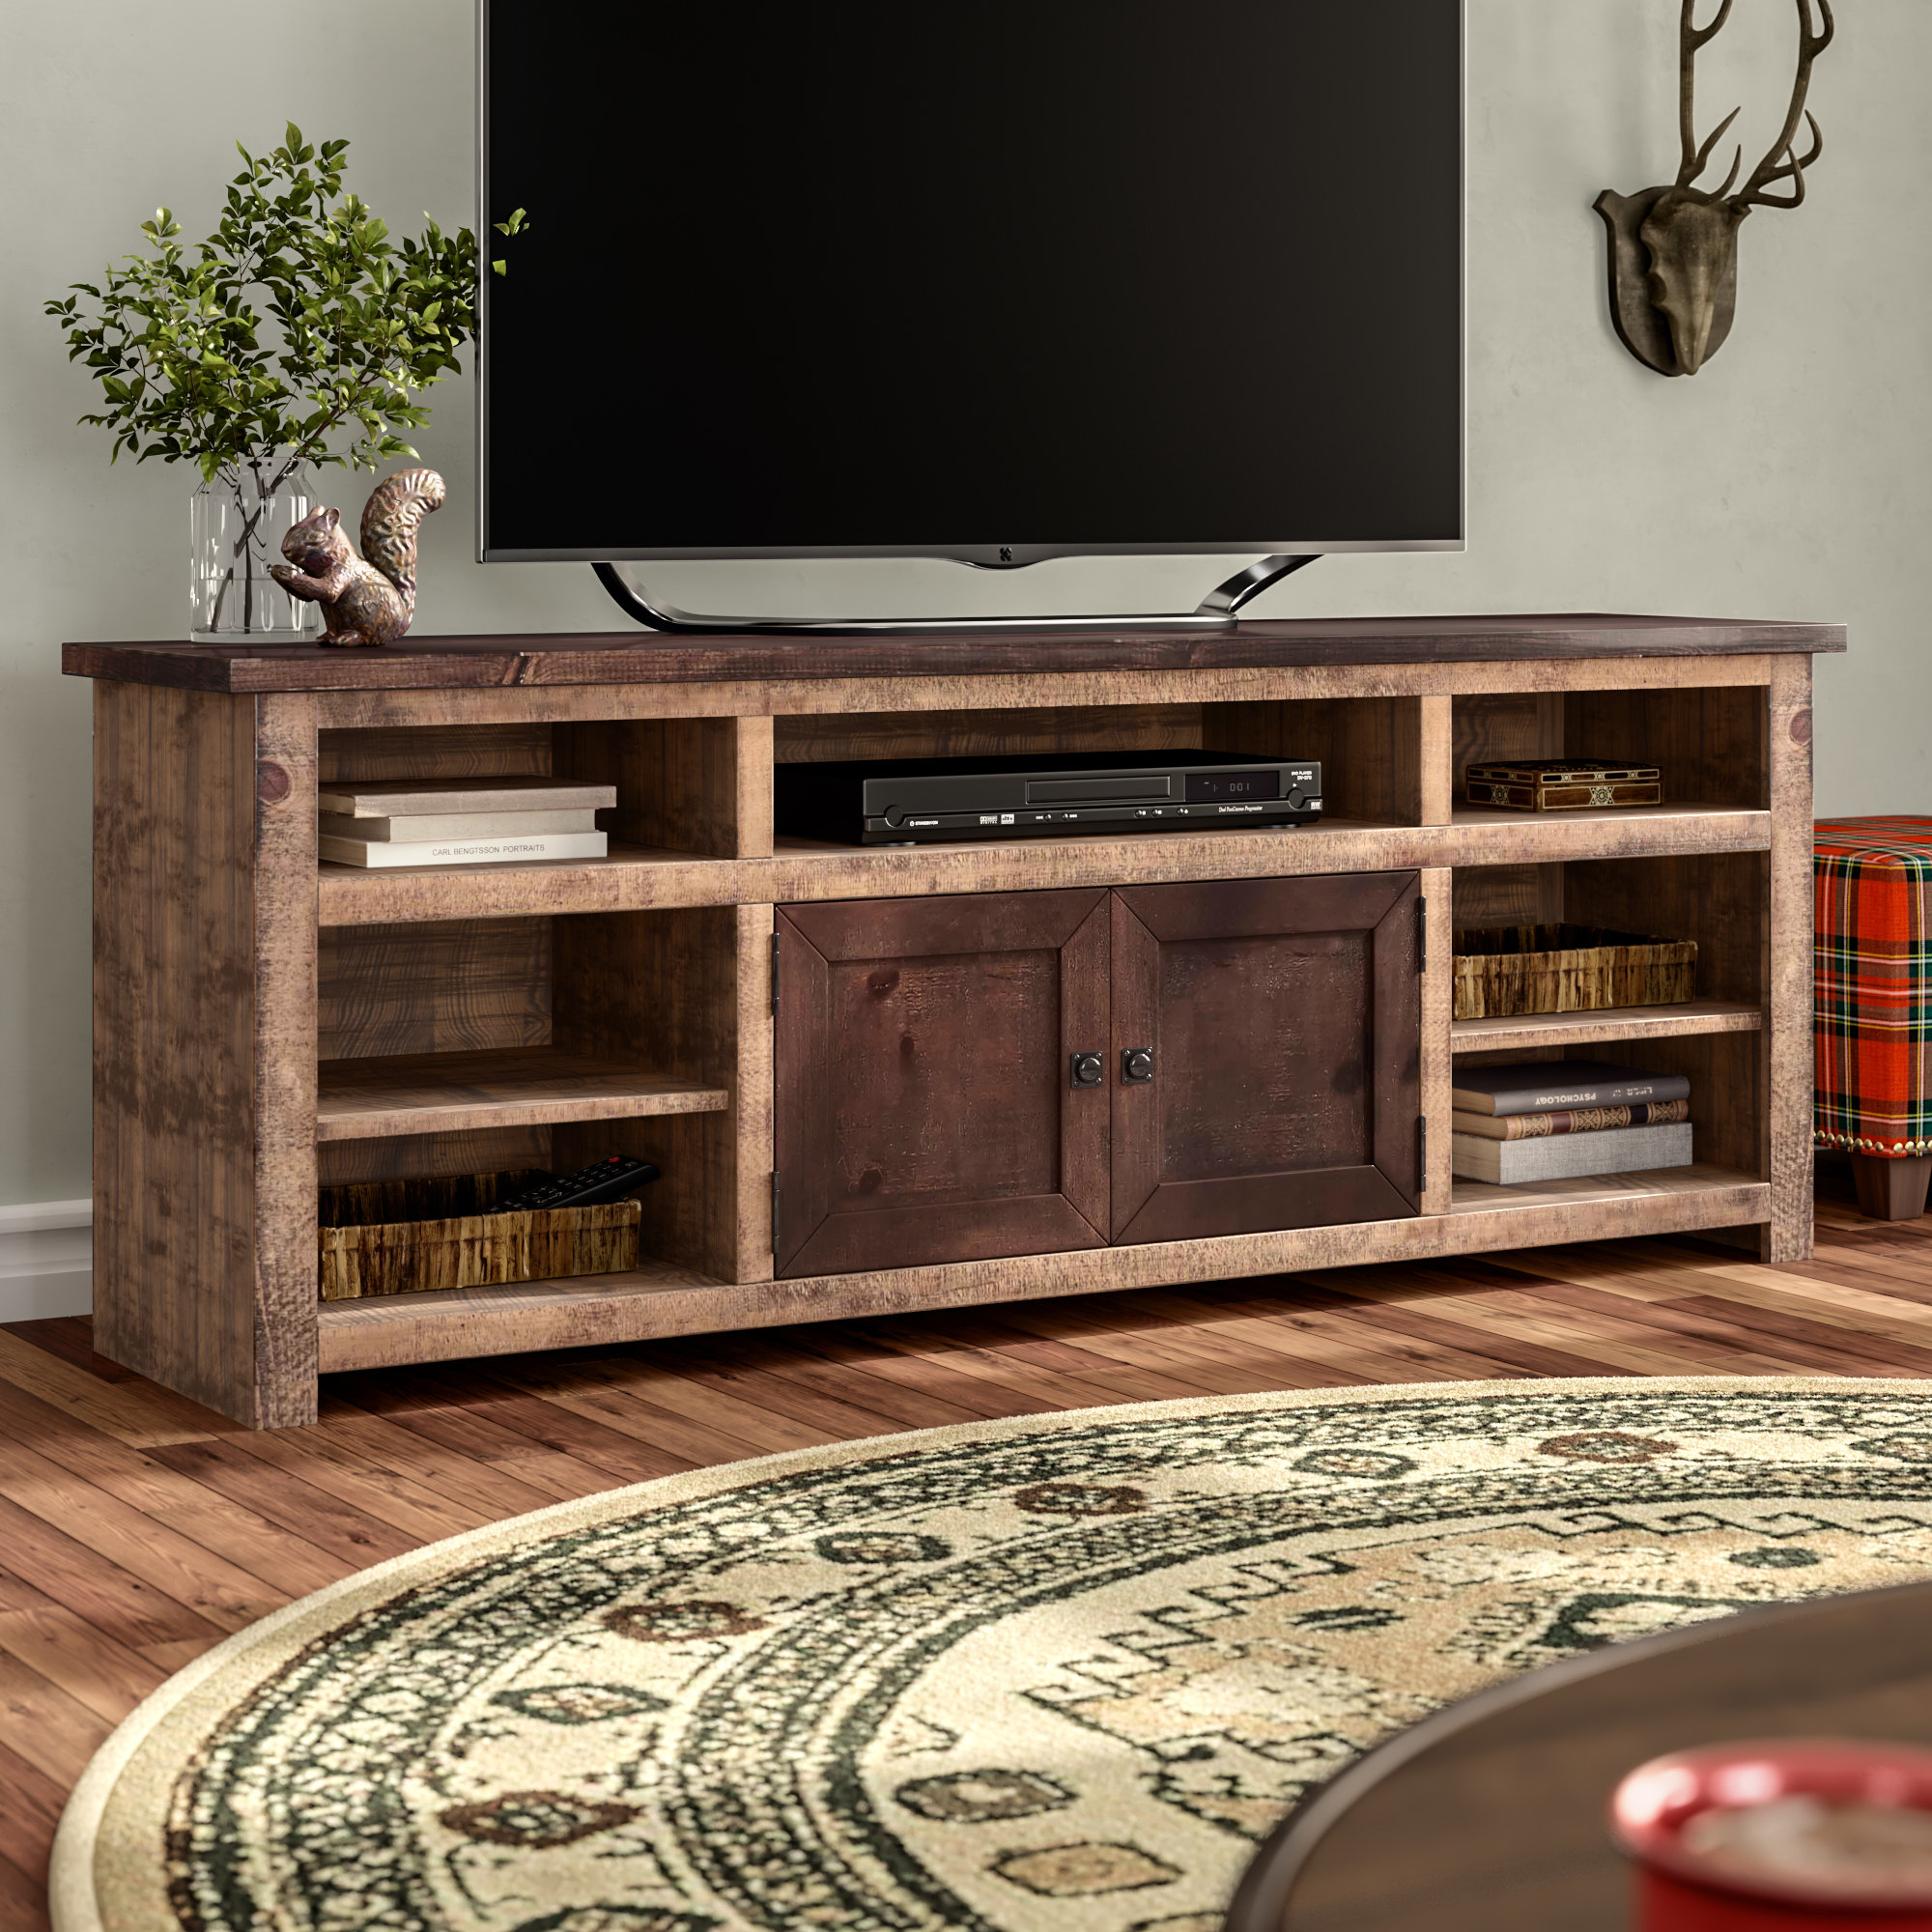 70 Inch Tv Stands | Joss & Main inside Walton 72 Inch Tv Stands (Image 6 of 30)